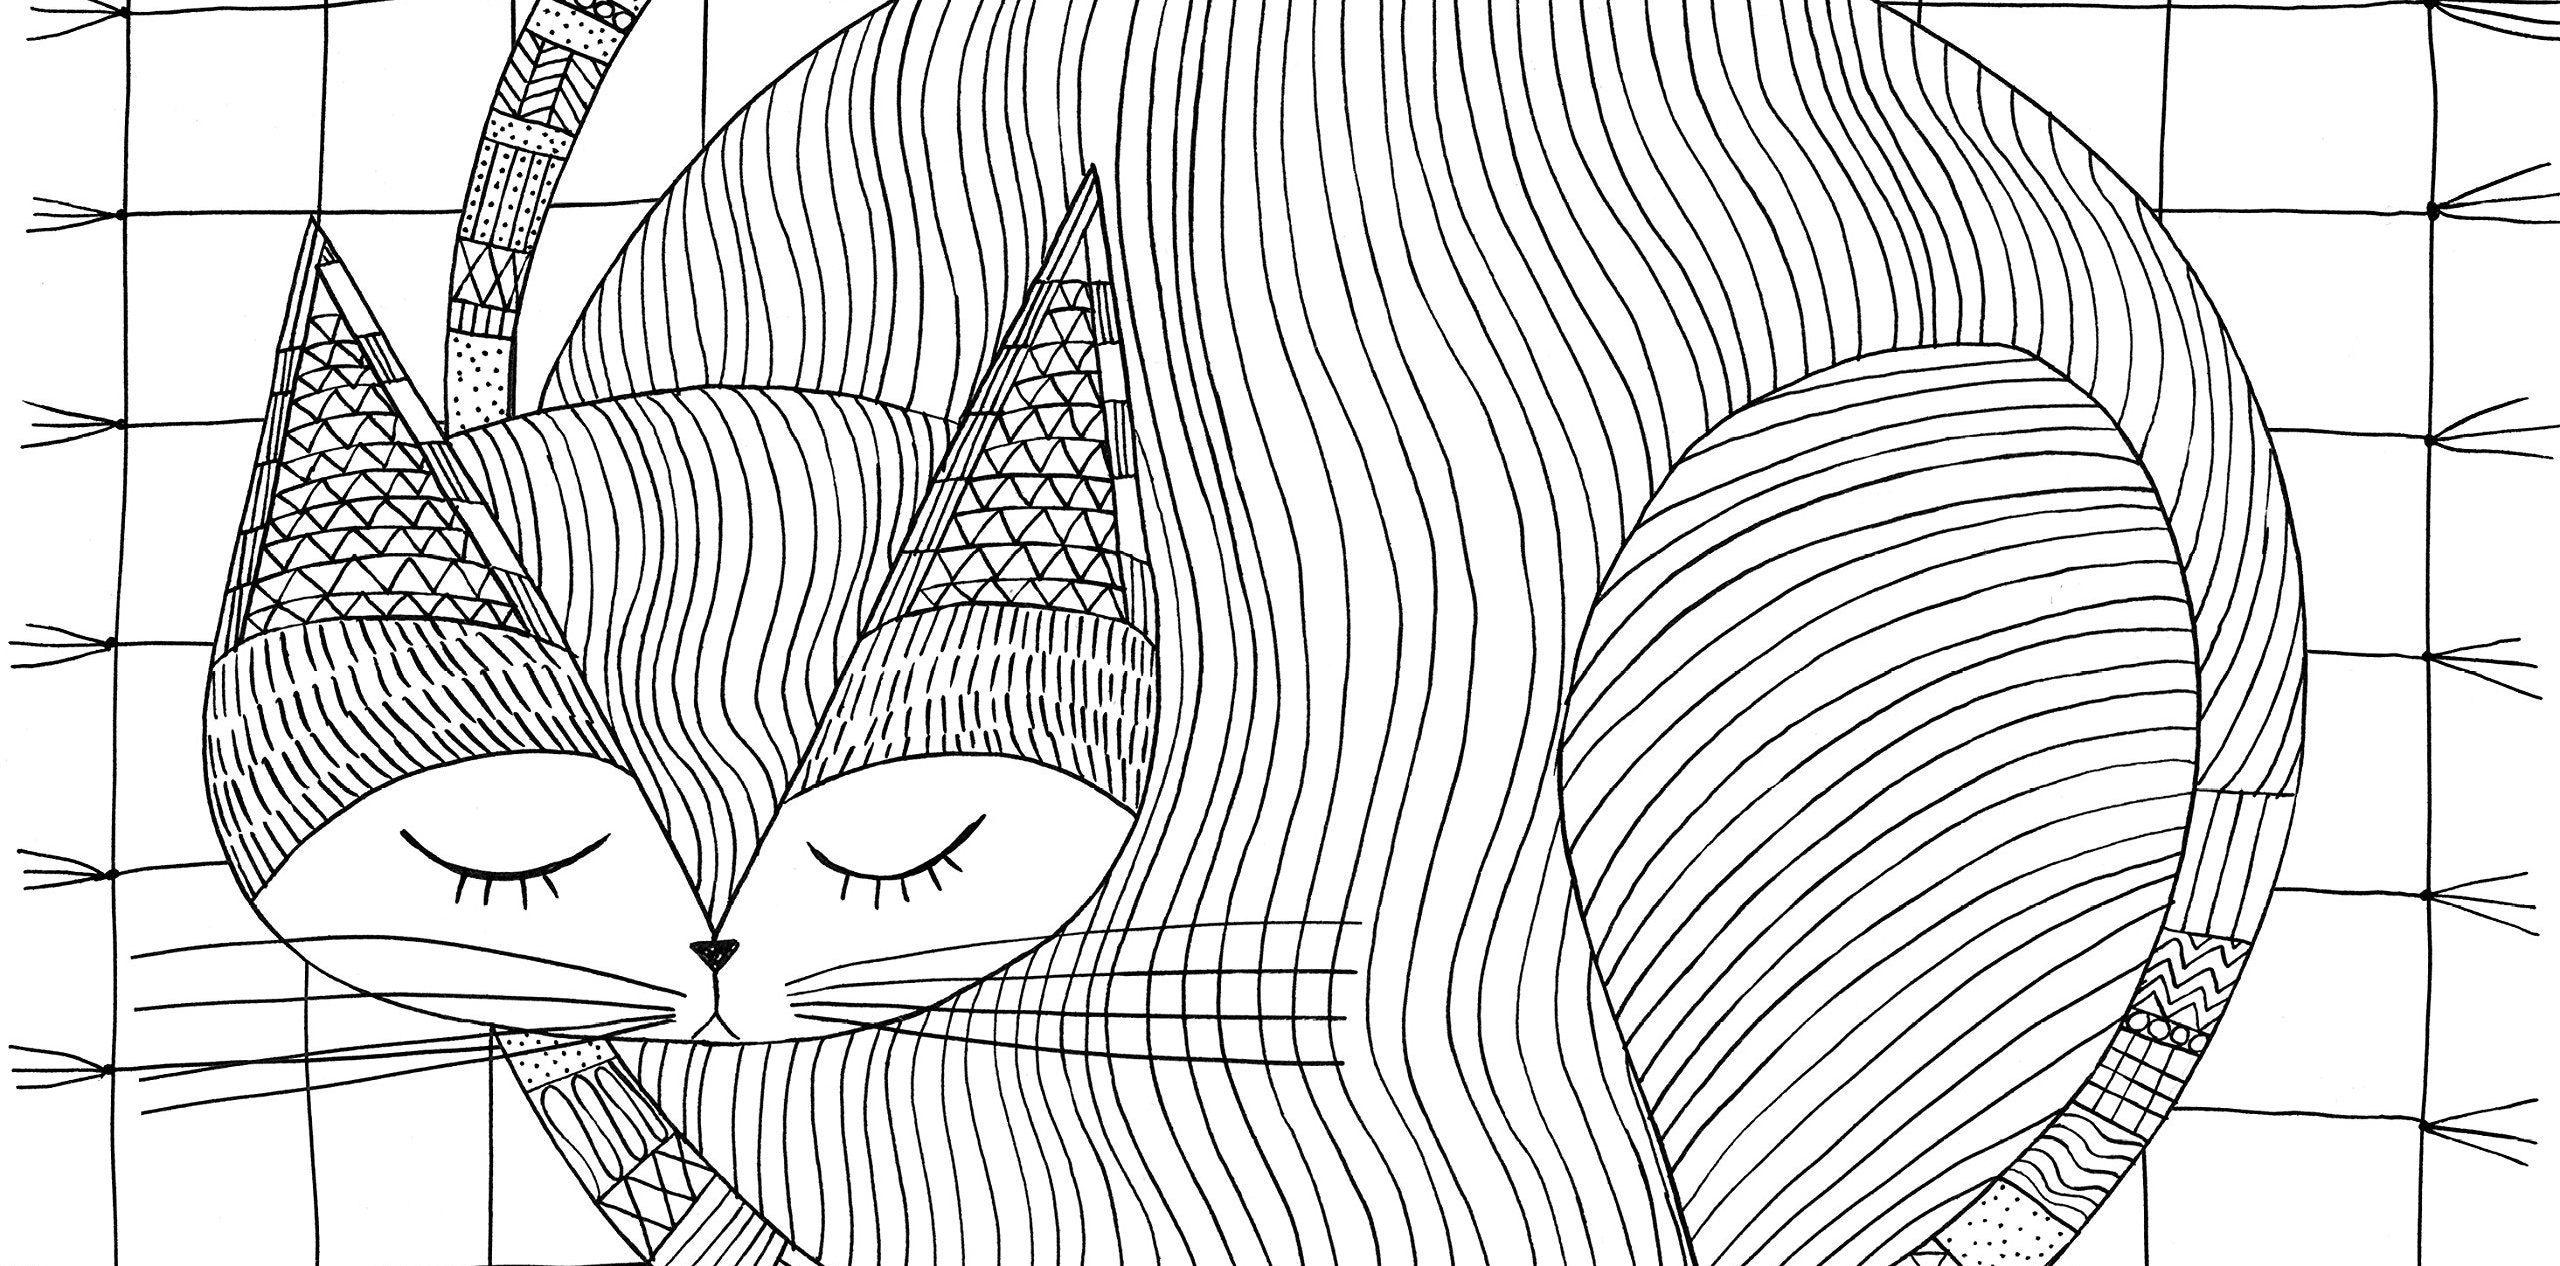 7 Colouring Books To Help Ease Anxiety During Lockdown & Beyond